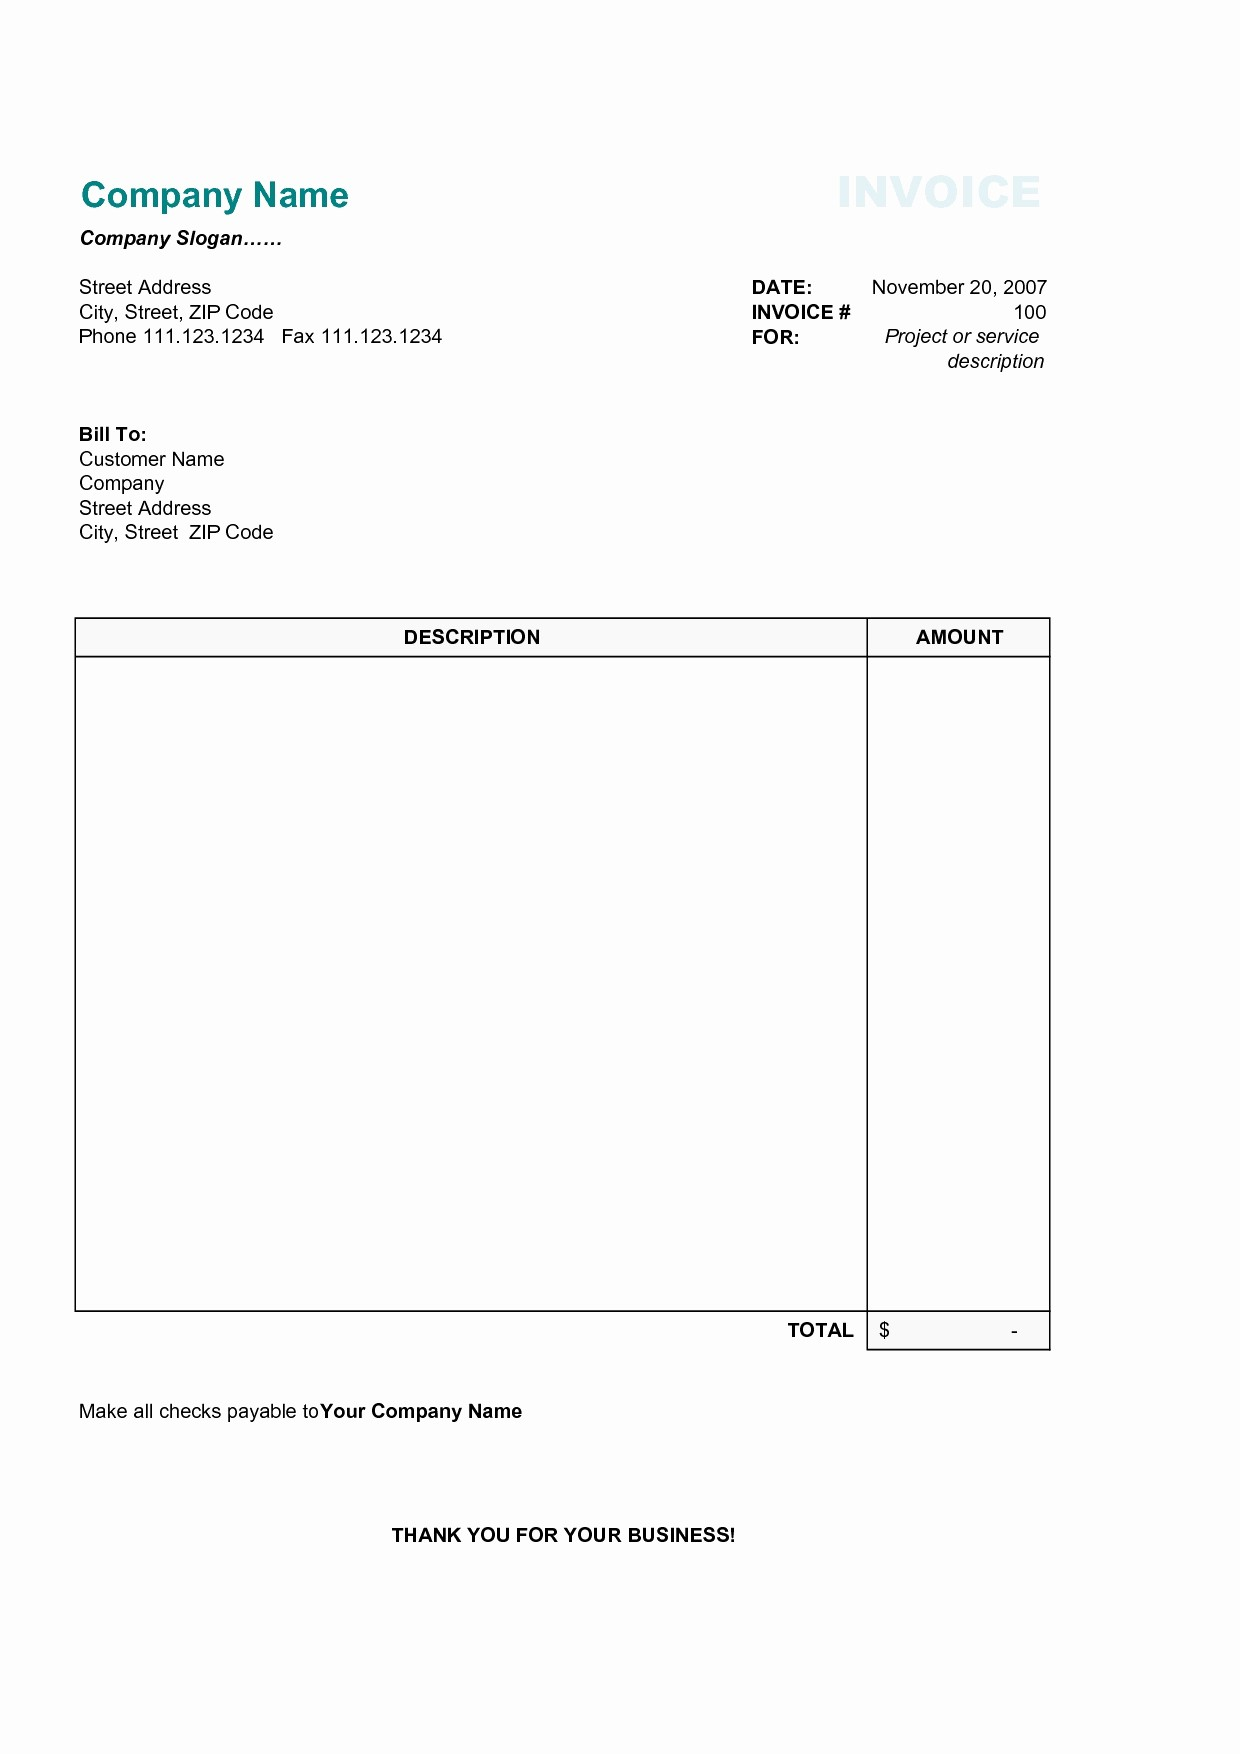 Download Invoice Template for Mac Luxury Word Document Invoice Template Mac Lovely Invoice Example